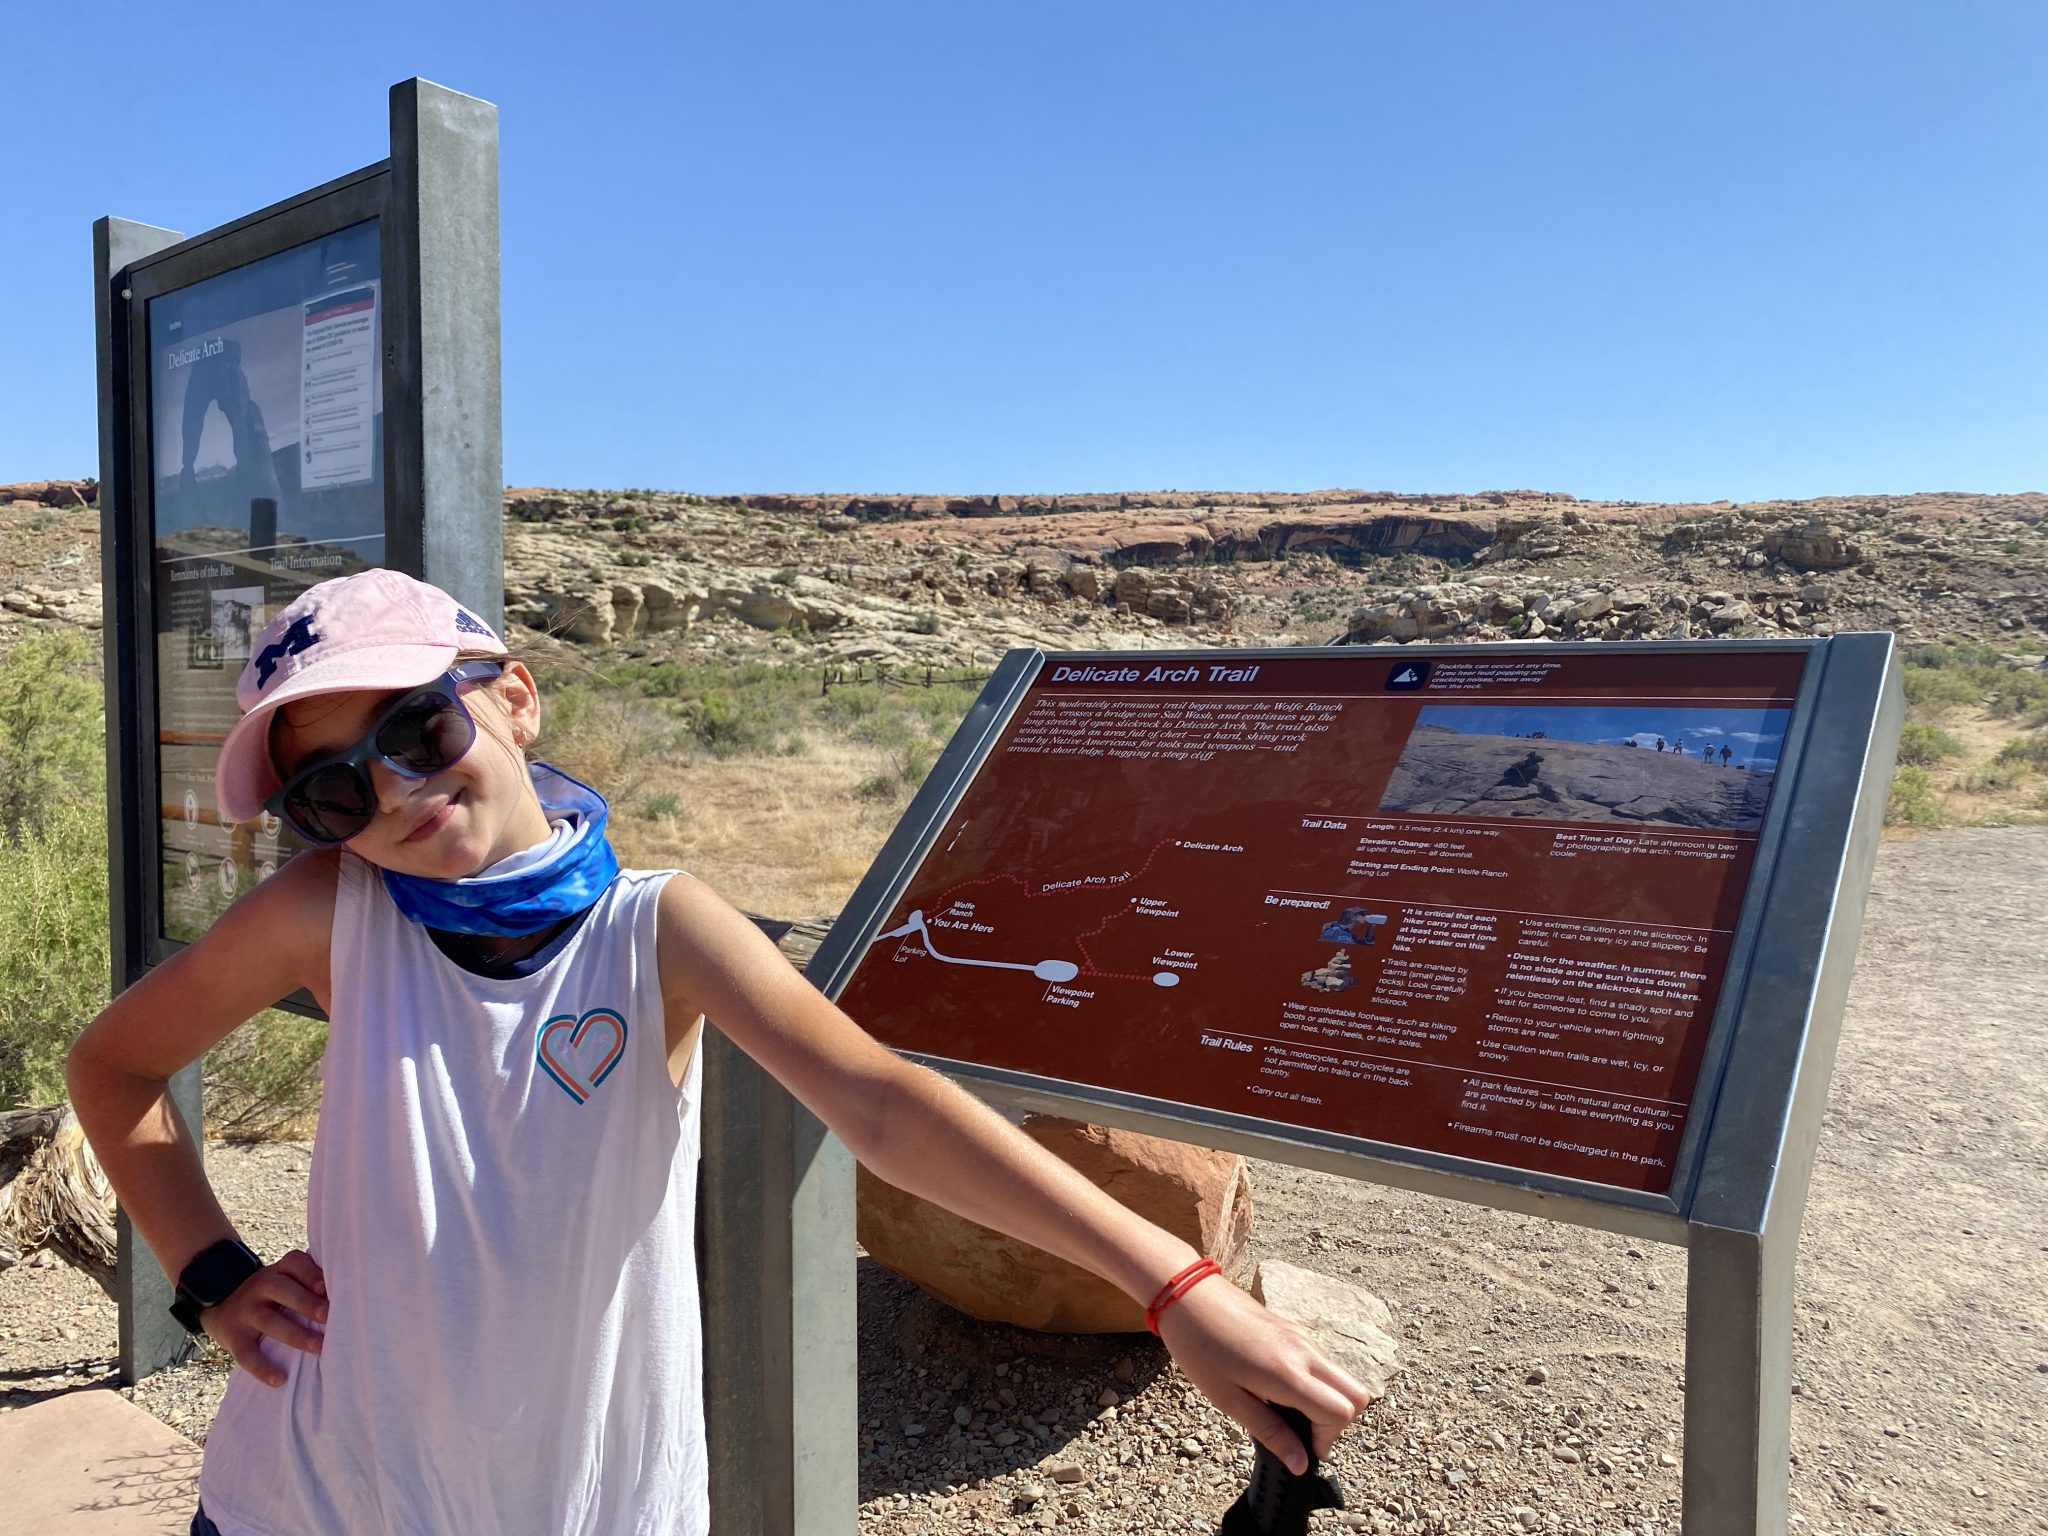 Hiking to Delicate Arch trailhead